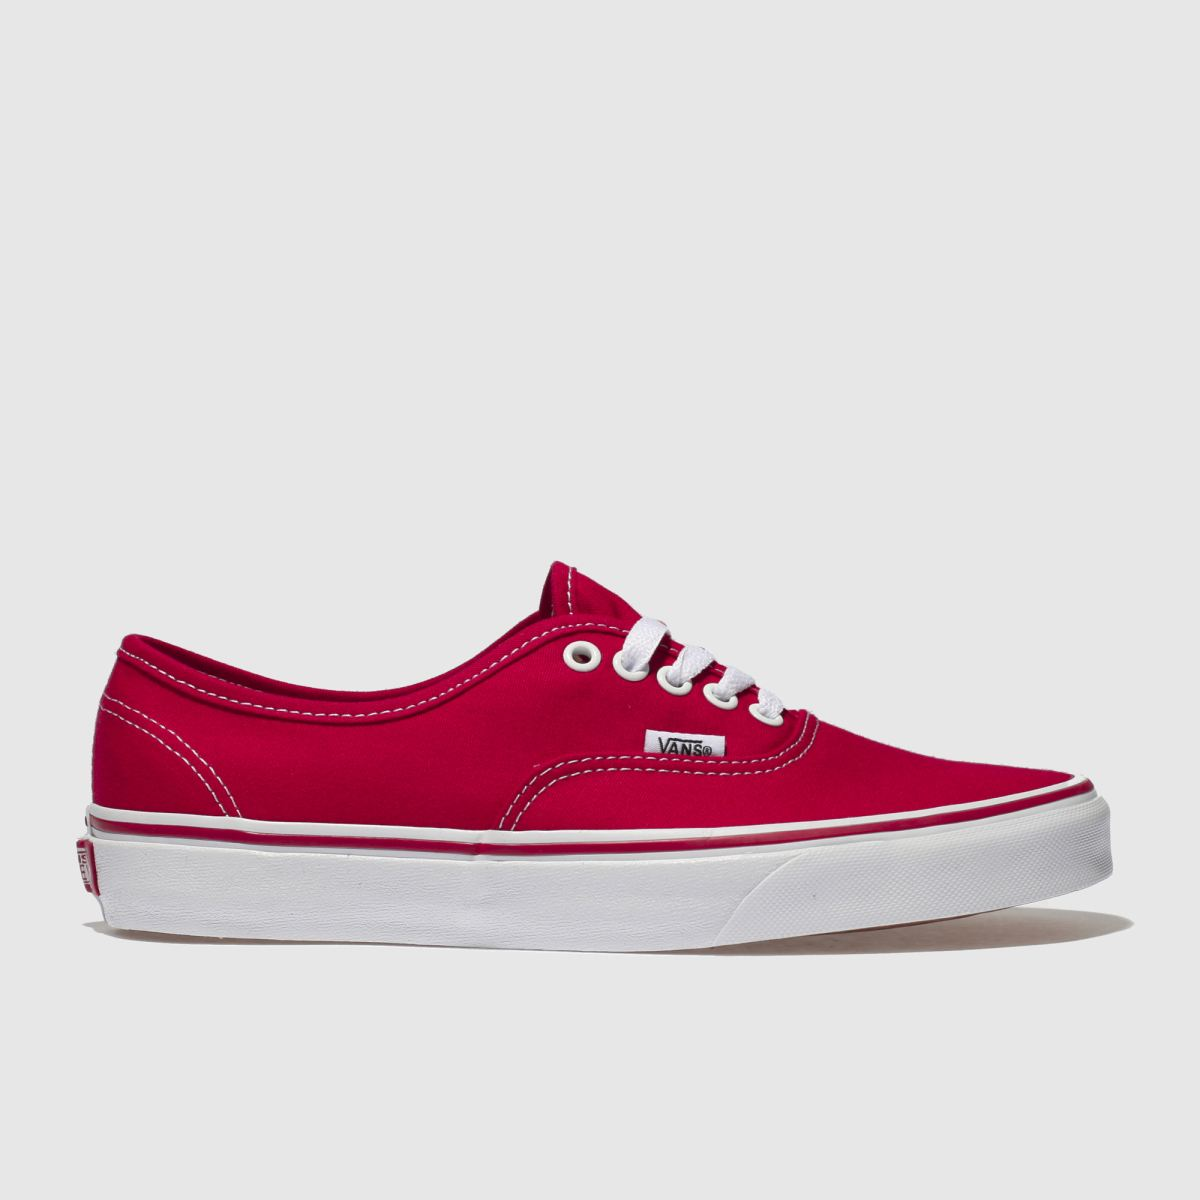 Vans Red Authentic Canvas Trainers